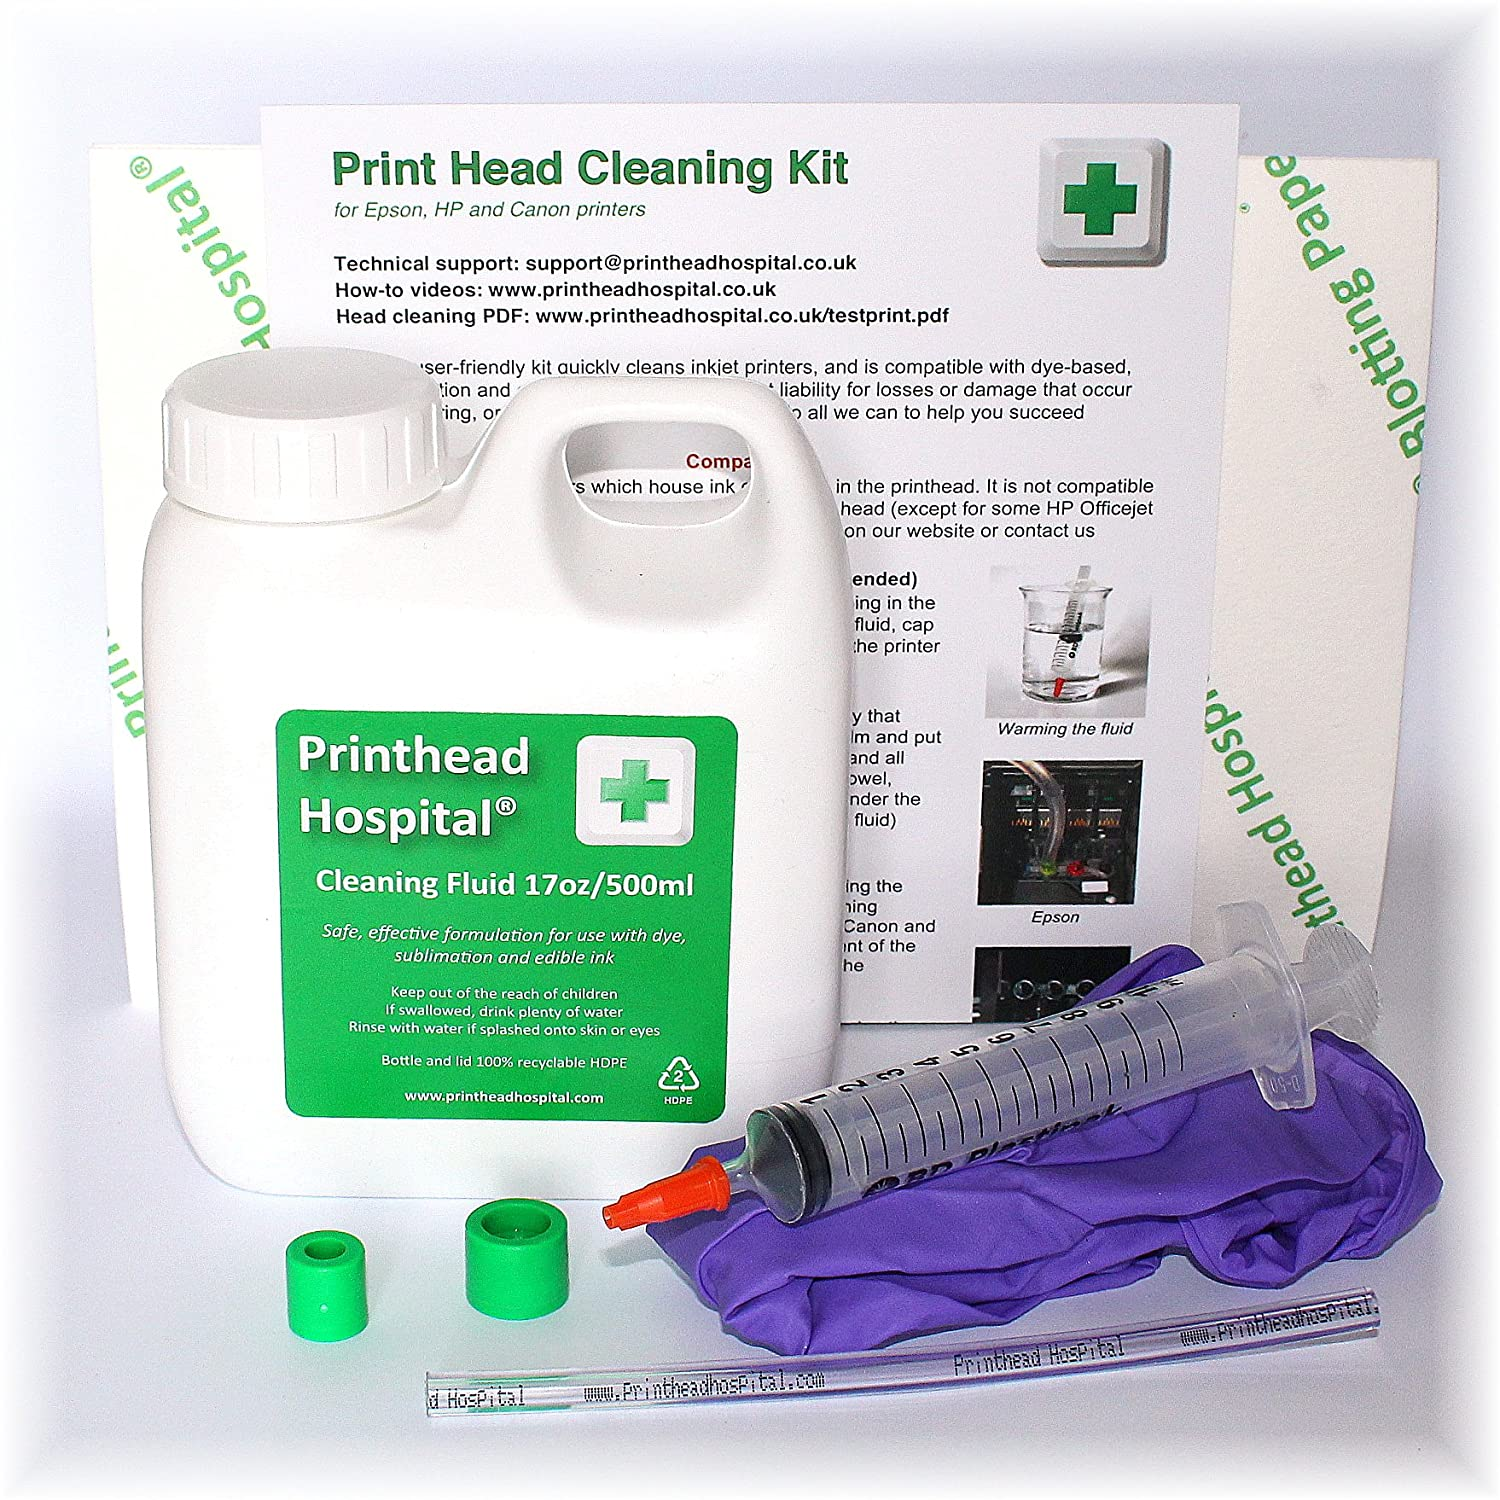 Print Head Cleaning Kit for Epson Canon Brother and HP printers - 17oz 500ml